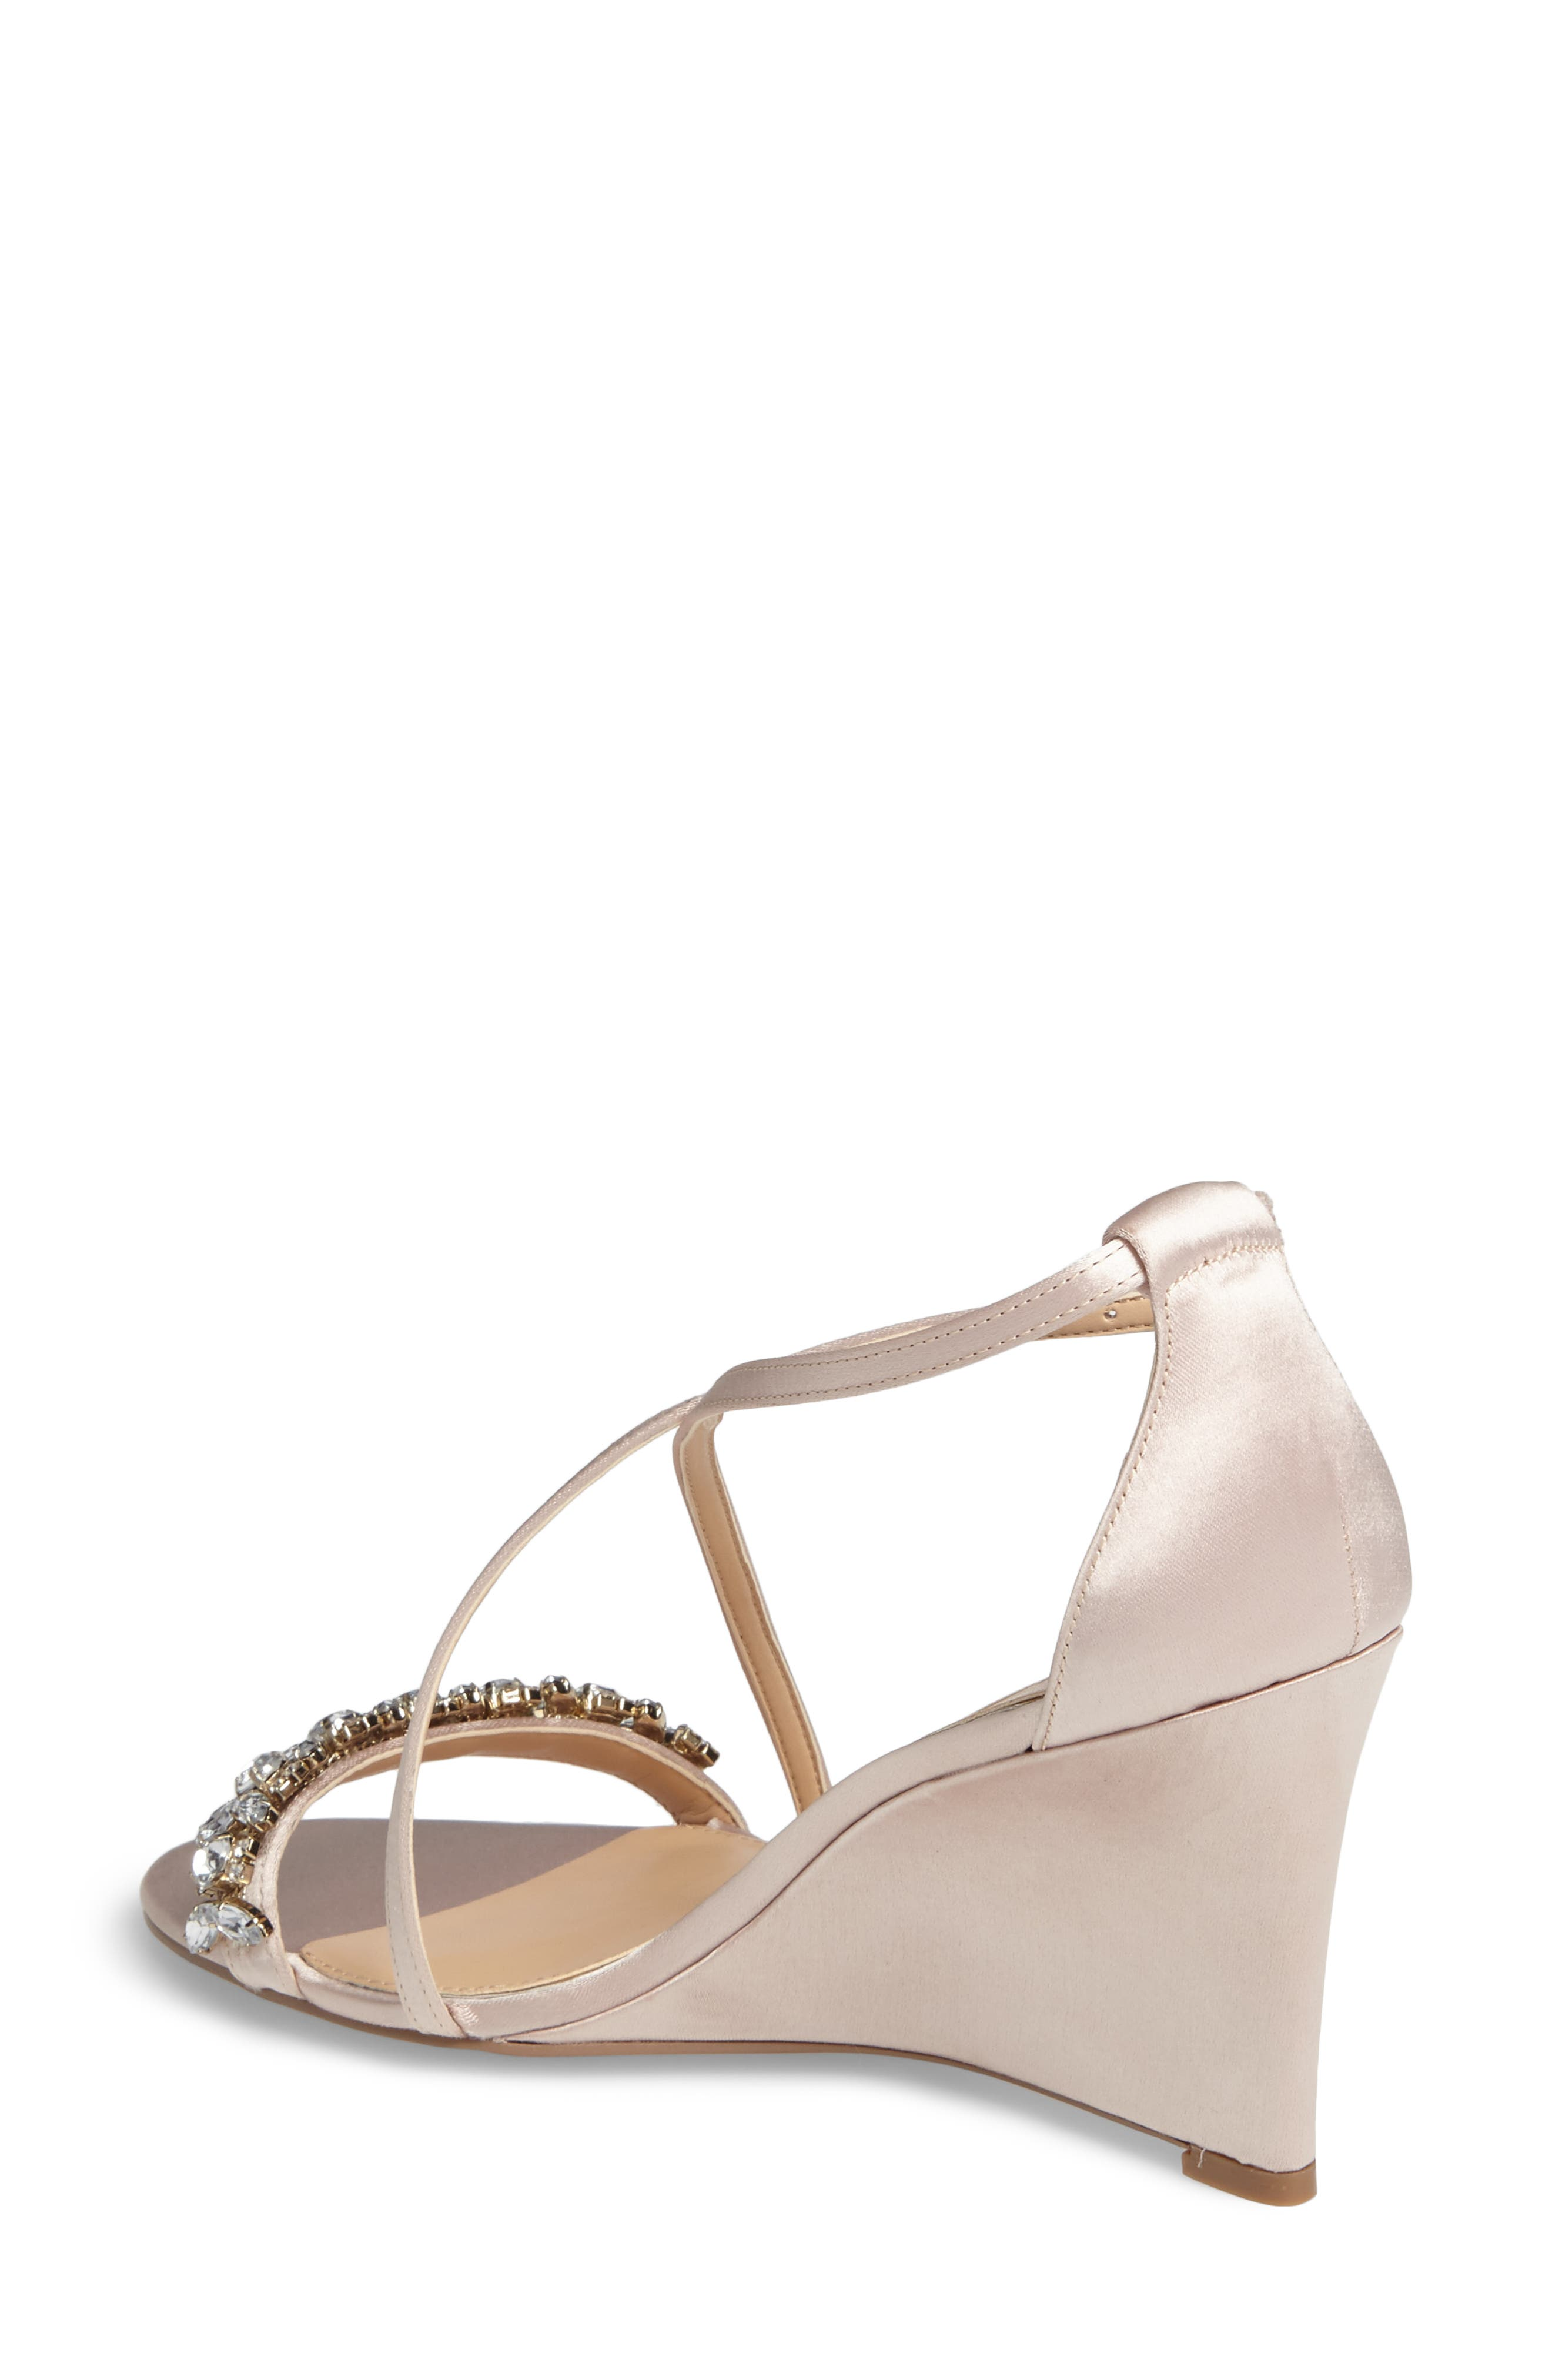 Embellished Strappy Wedge Sandal,                             Alternate thumbnail 2, color,                             Champagne Satin